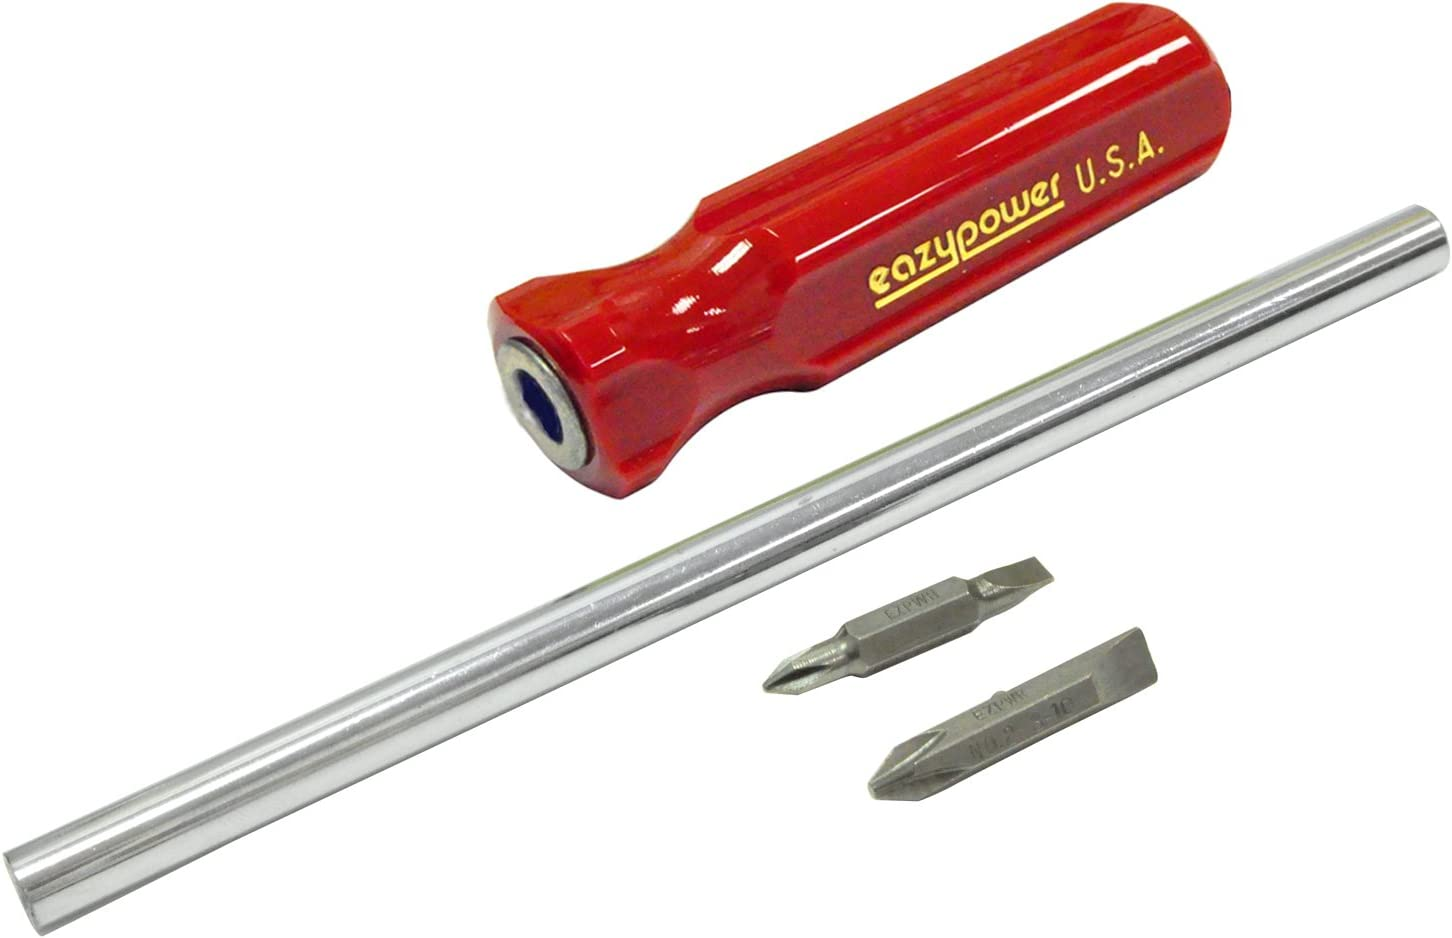 Eazypower 87751 1-Pack Red 11-inch 4-in-1 Molded Handle #1//4-5 1//4-inch Hex #2//8-10 Phillips//Slotted Screwdriver